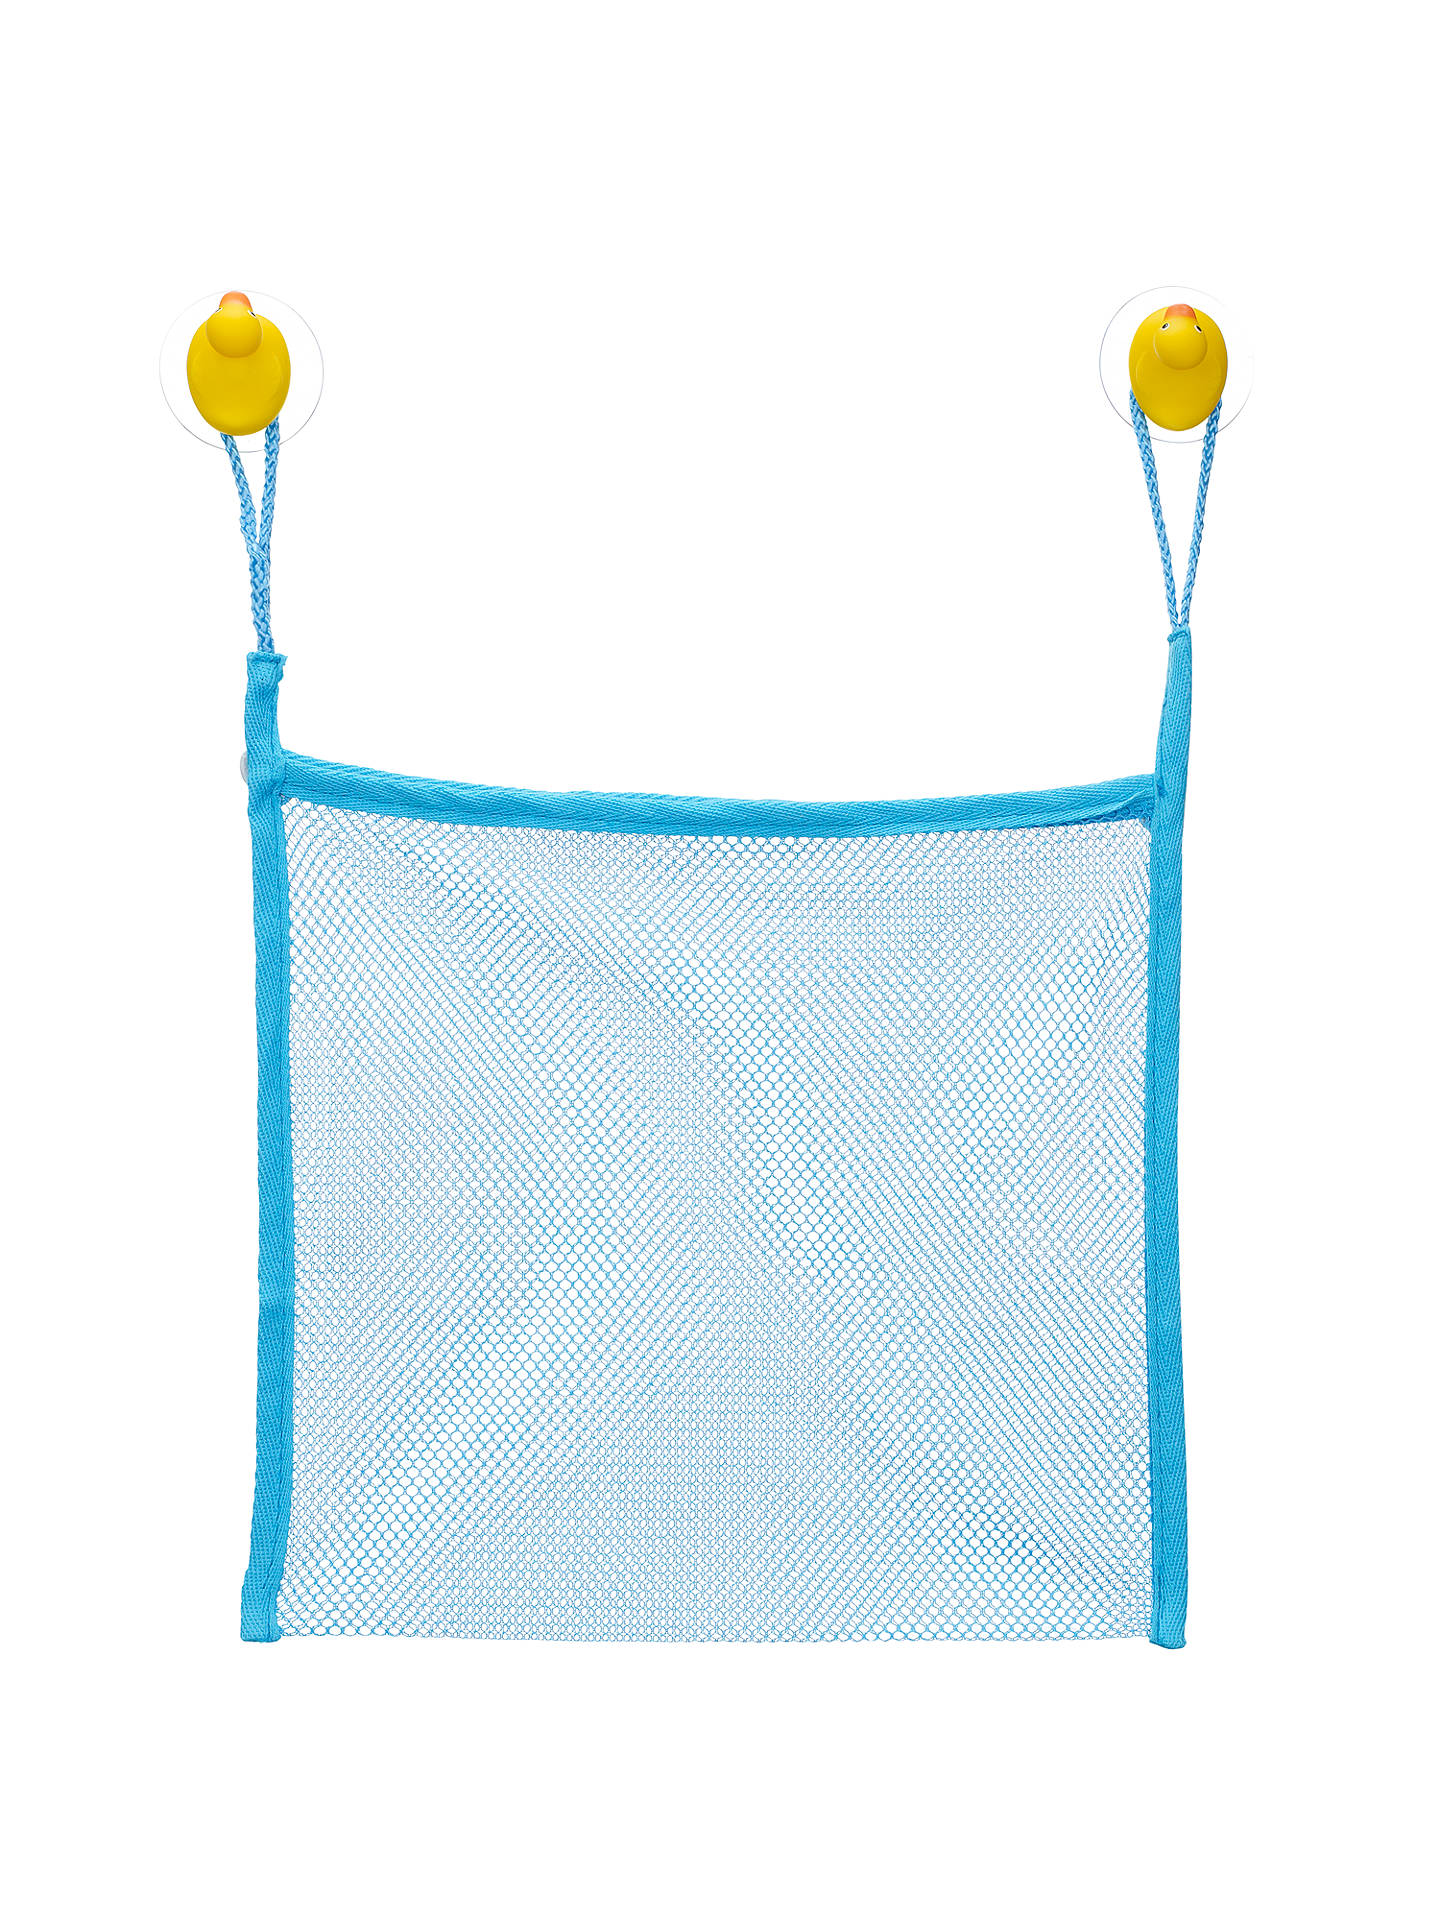 466d5a7071 Buy John Lewis   Partners Bath Toy Bag Online at johnlewis.com